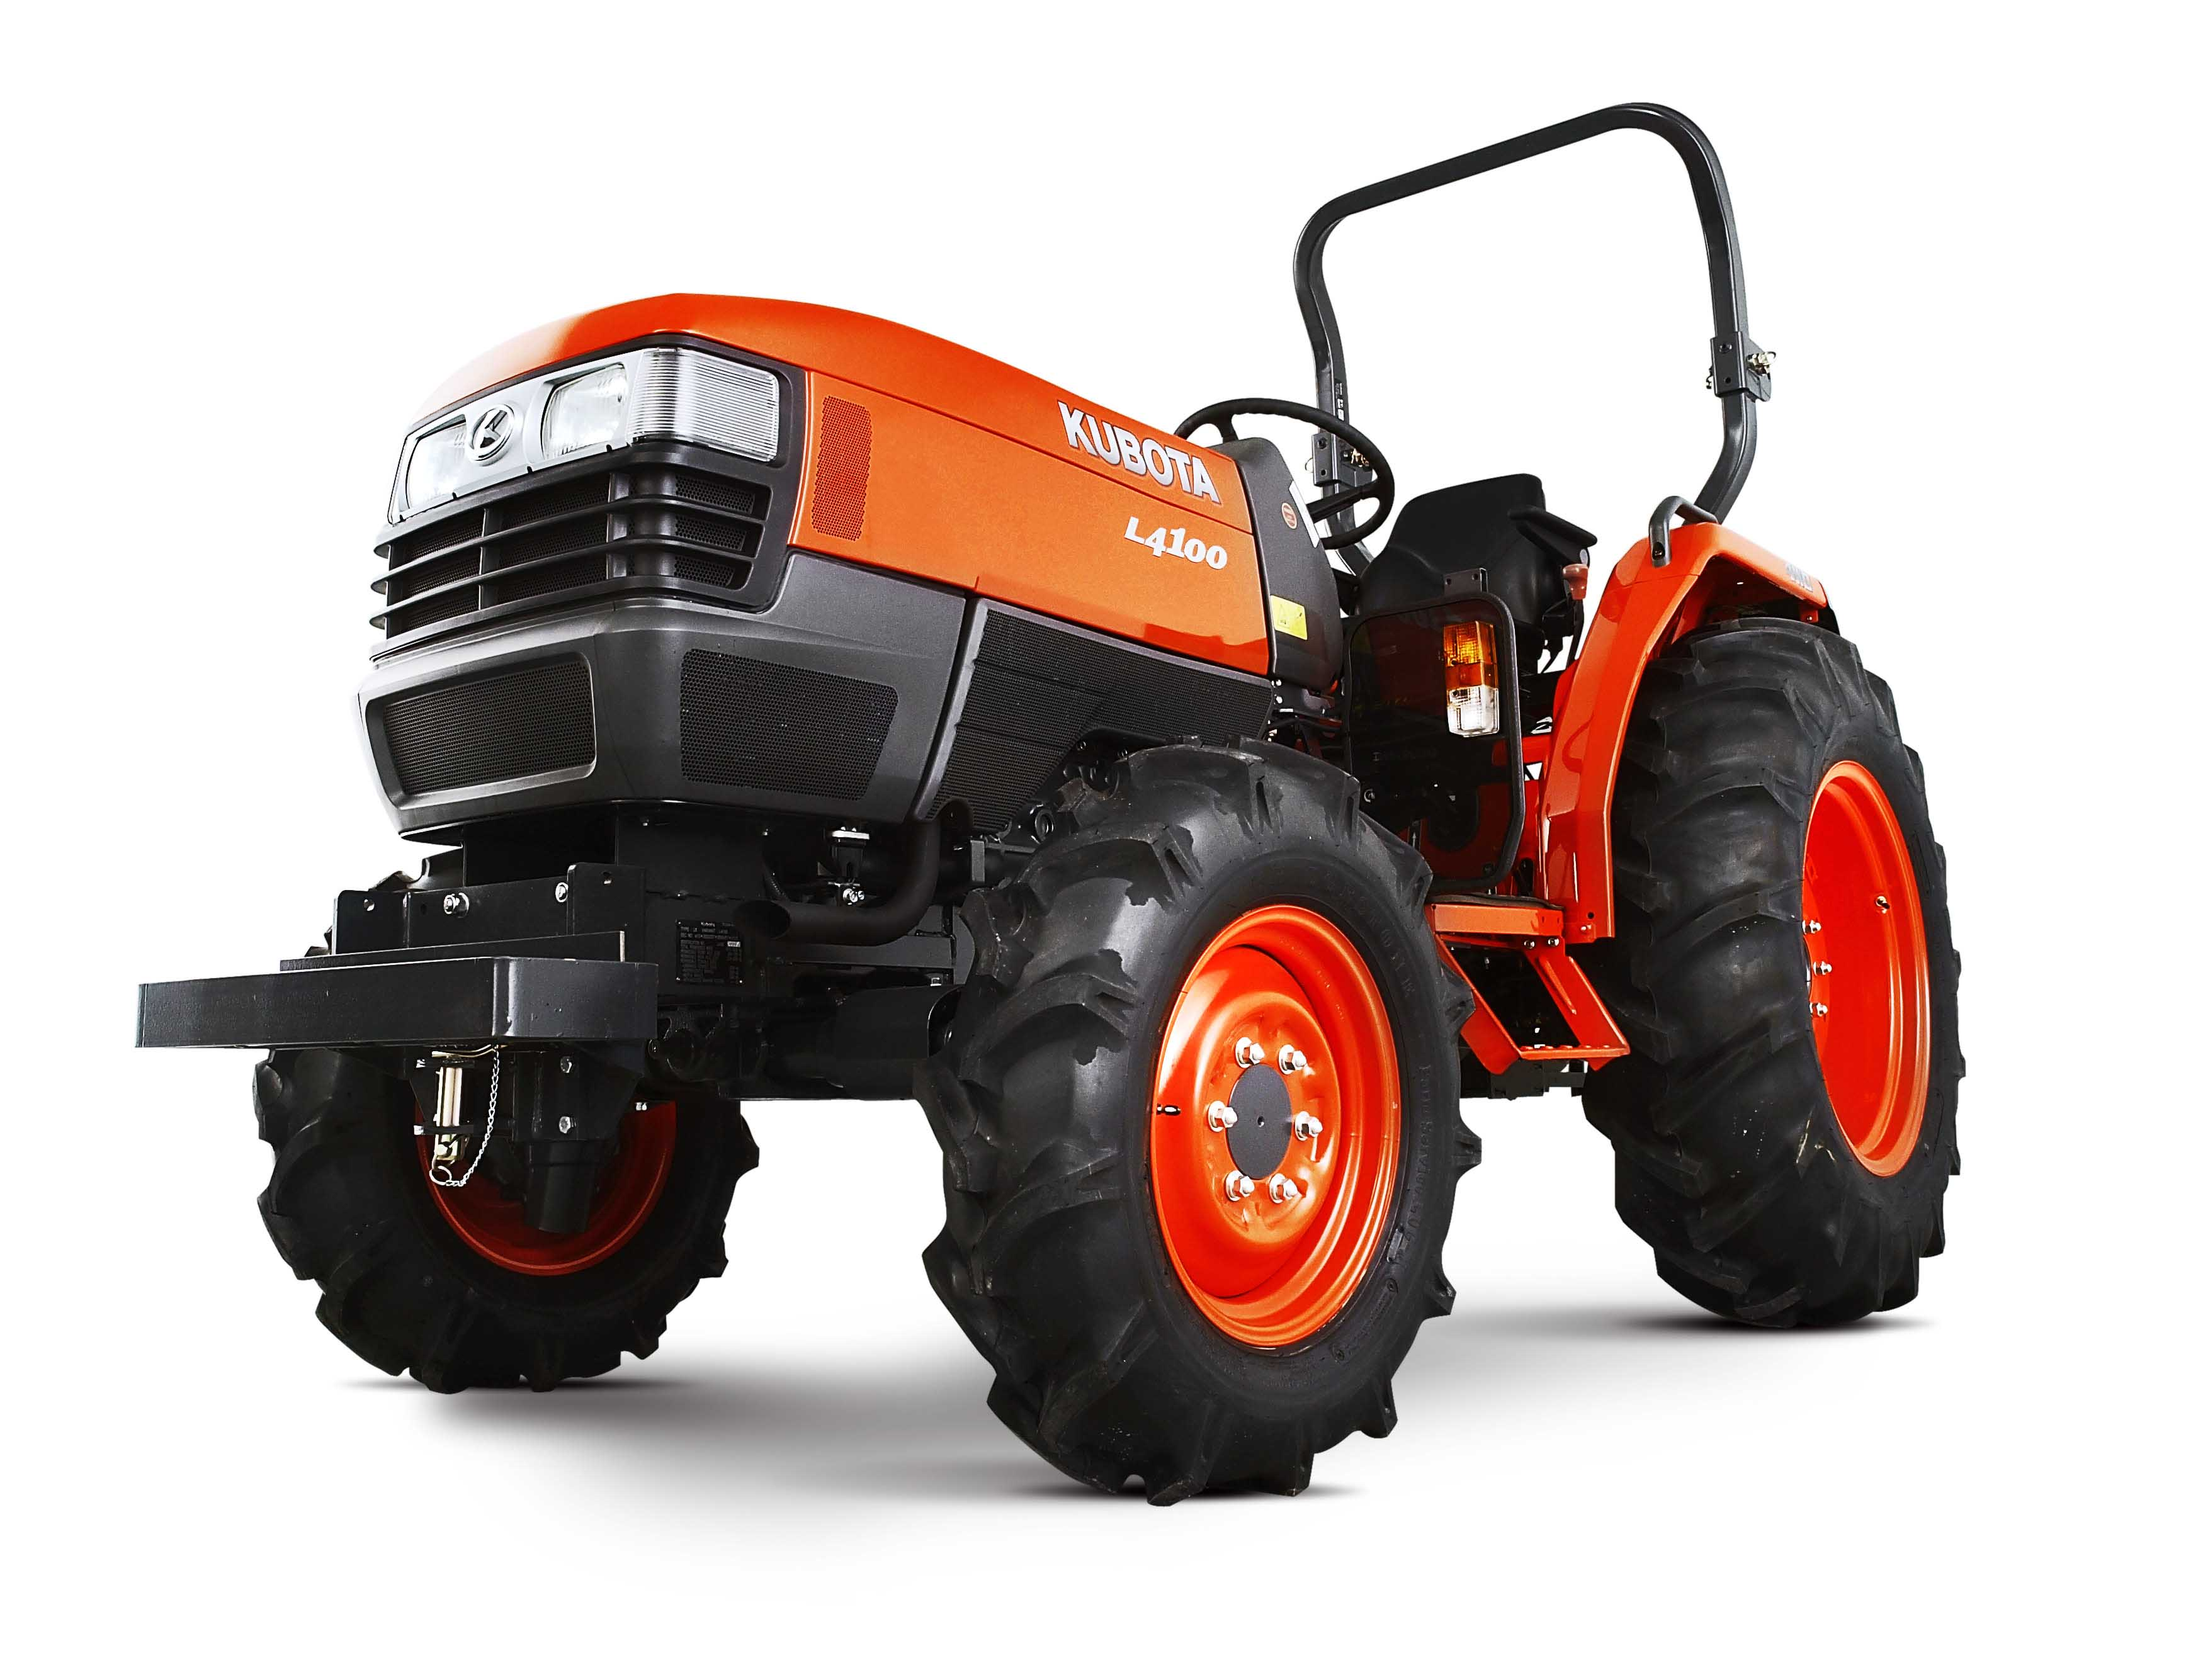 Kubota l-series photo - 4